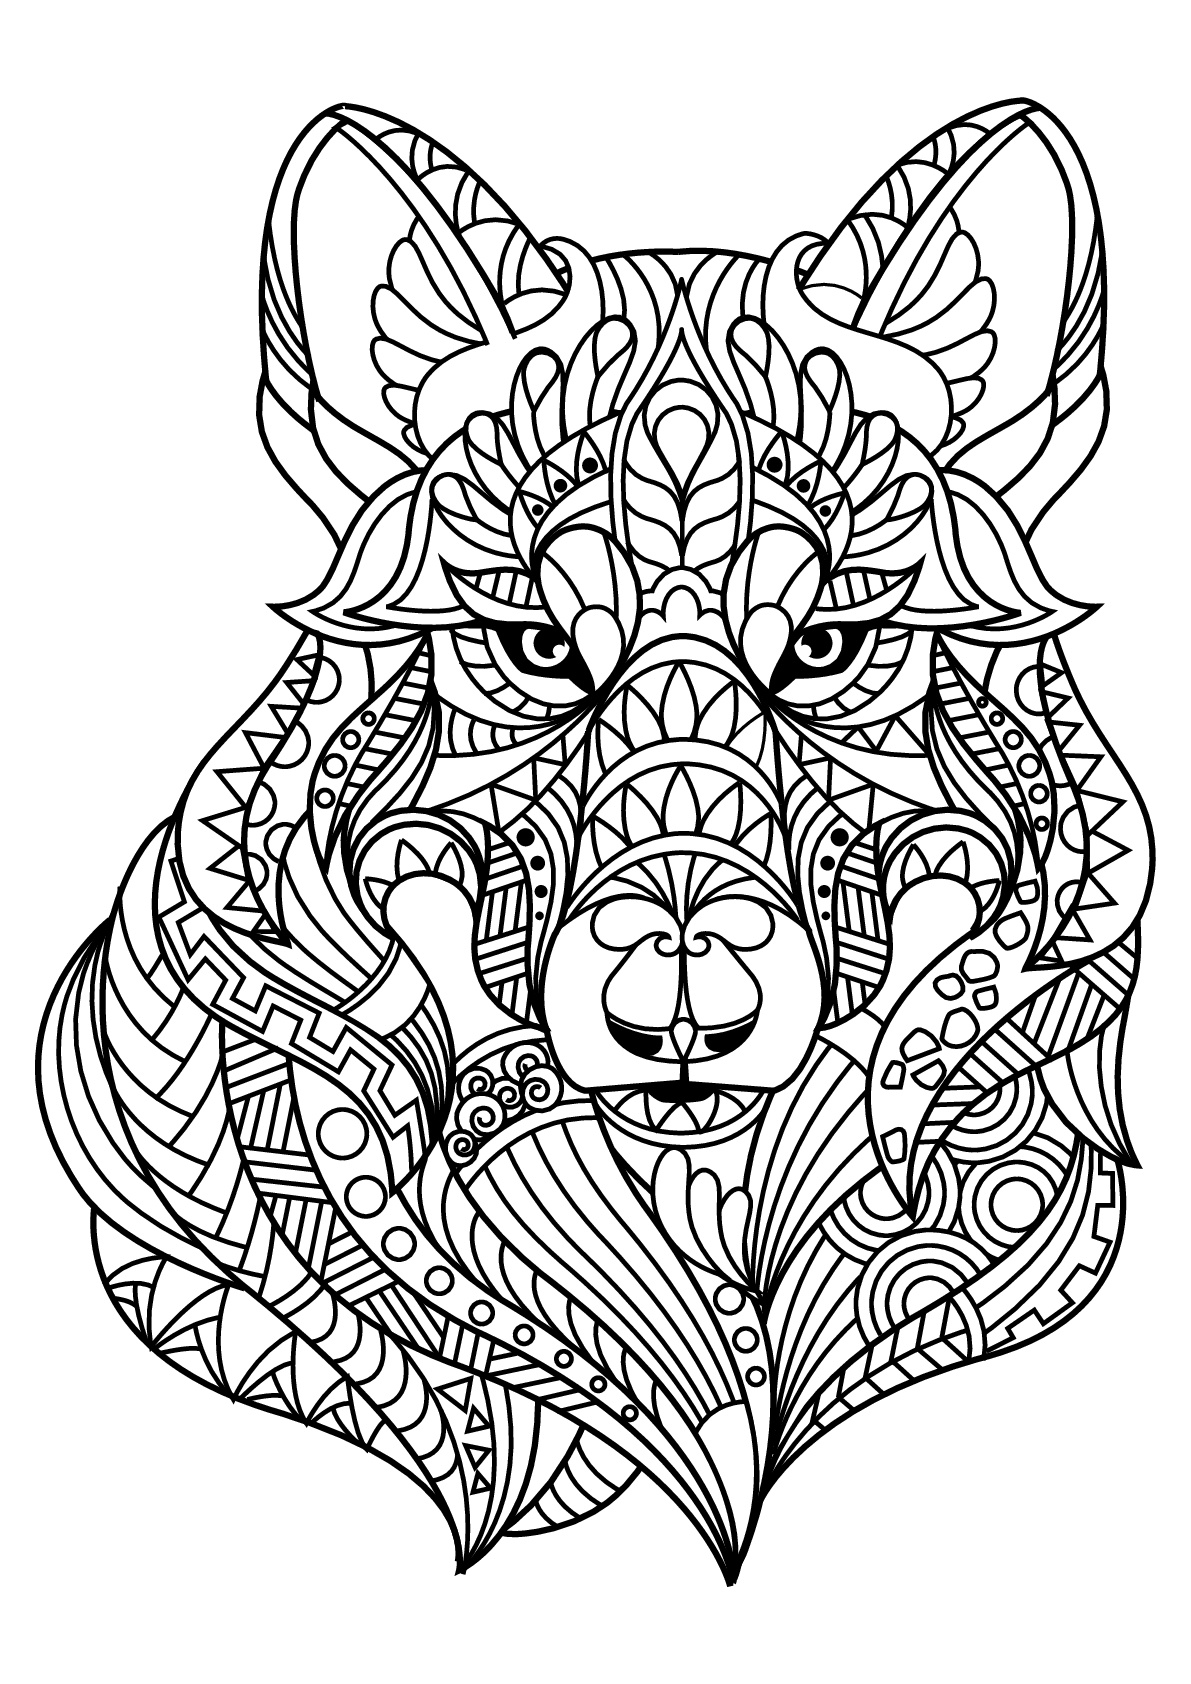 wolf coloring pages for adults get this wolf coloring pages for adults 47582 coloring pages for adults wolf